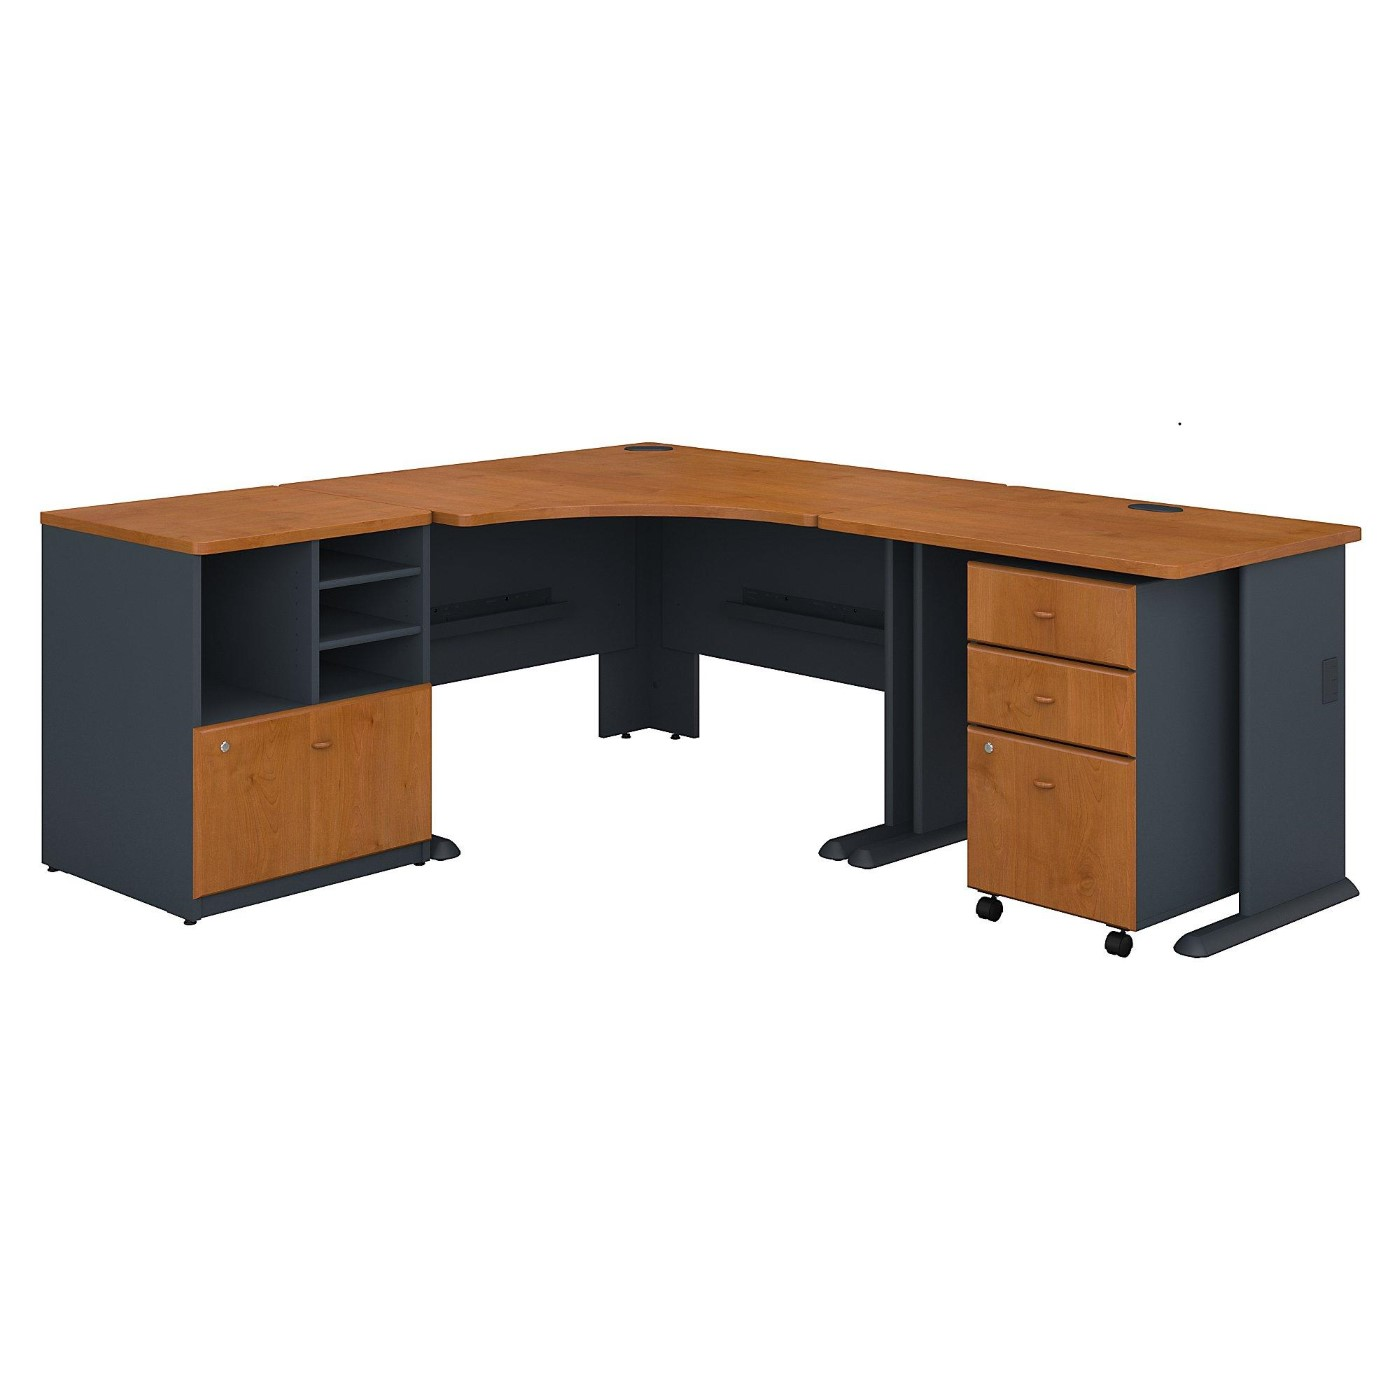 BUSH BUSINESS FURNITURE SERIES A 48W CORNER DESK WITH 36W RETURN AND STORAGE. FREE SHIPPING.  SALE DEDUCT 10% MORE ENTER '10percent' IN COUPON CODE BOX WHILE CHECKING OUT.